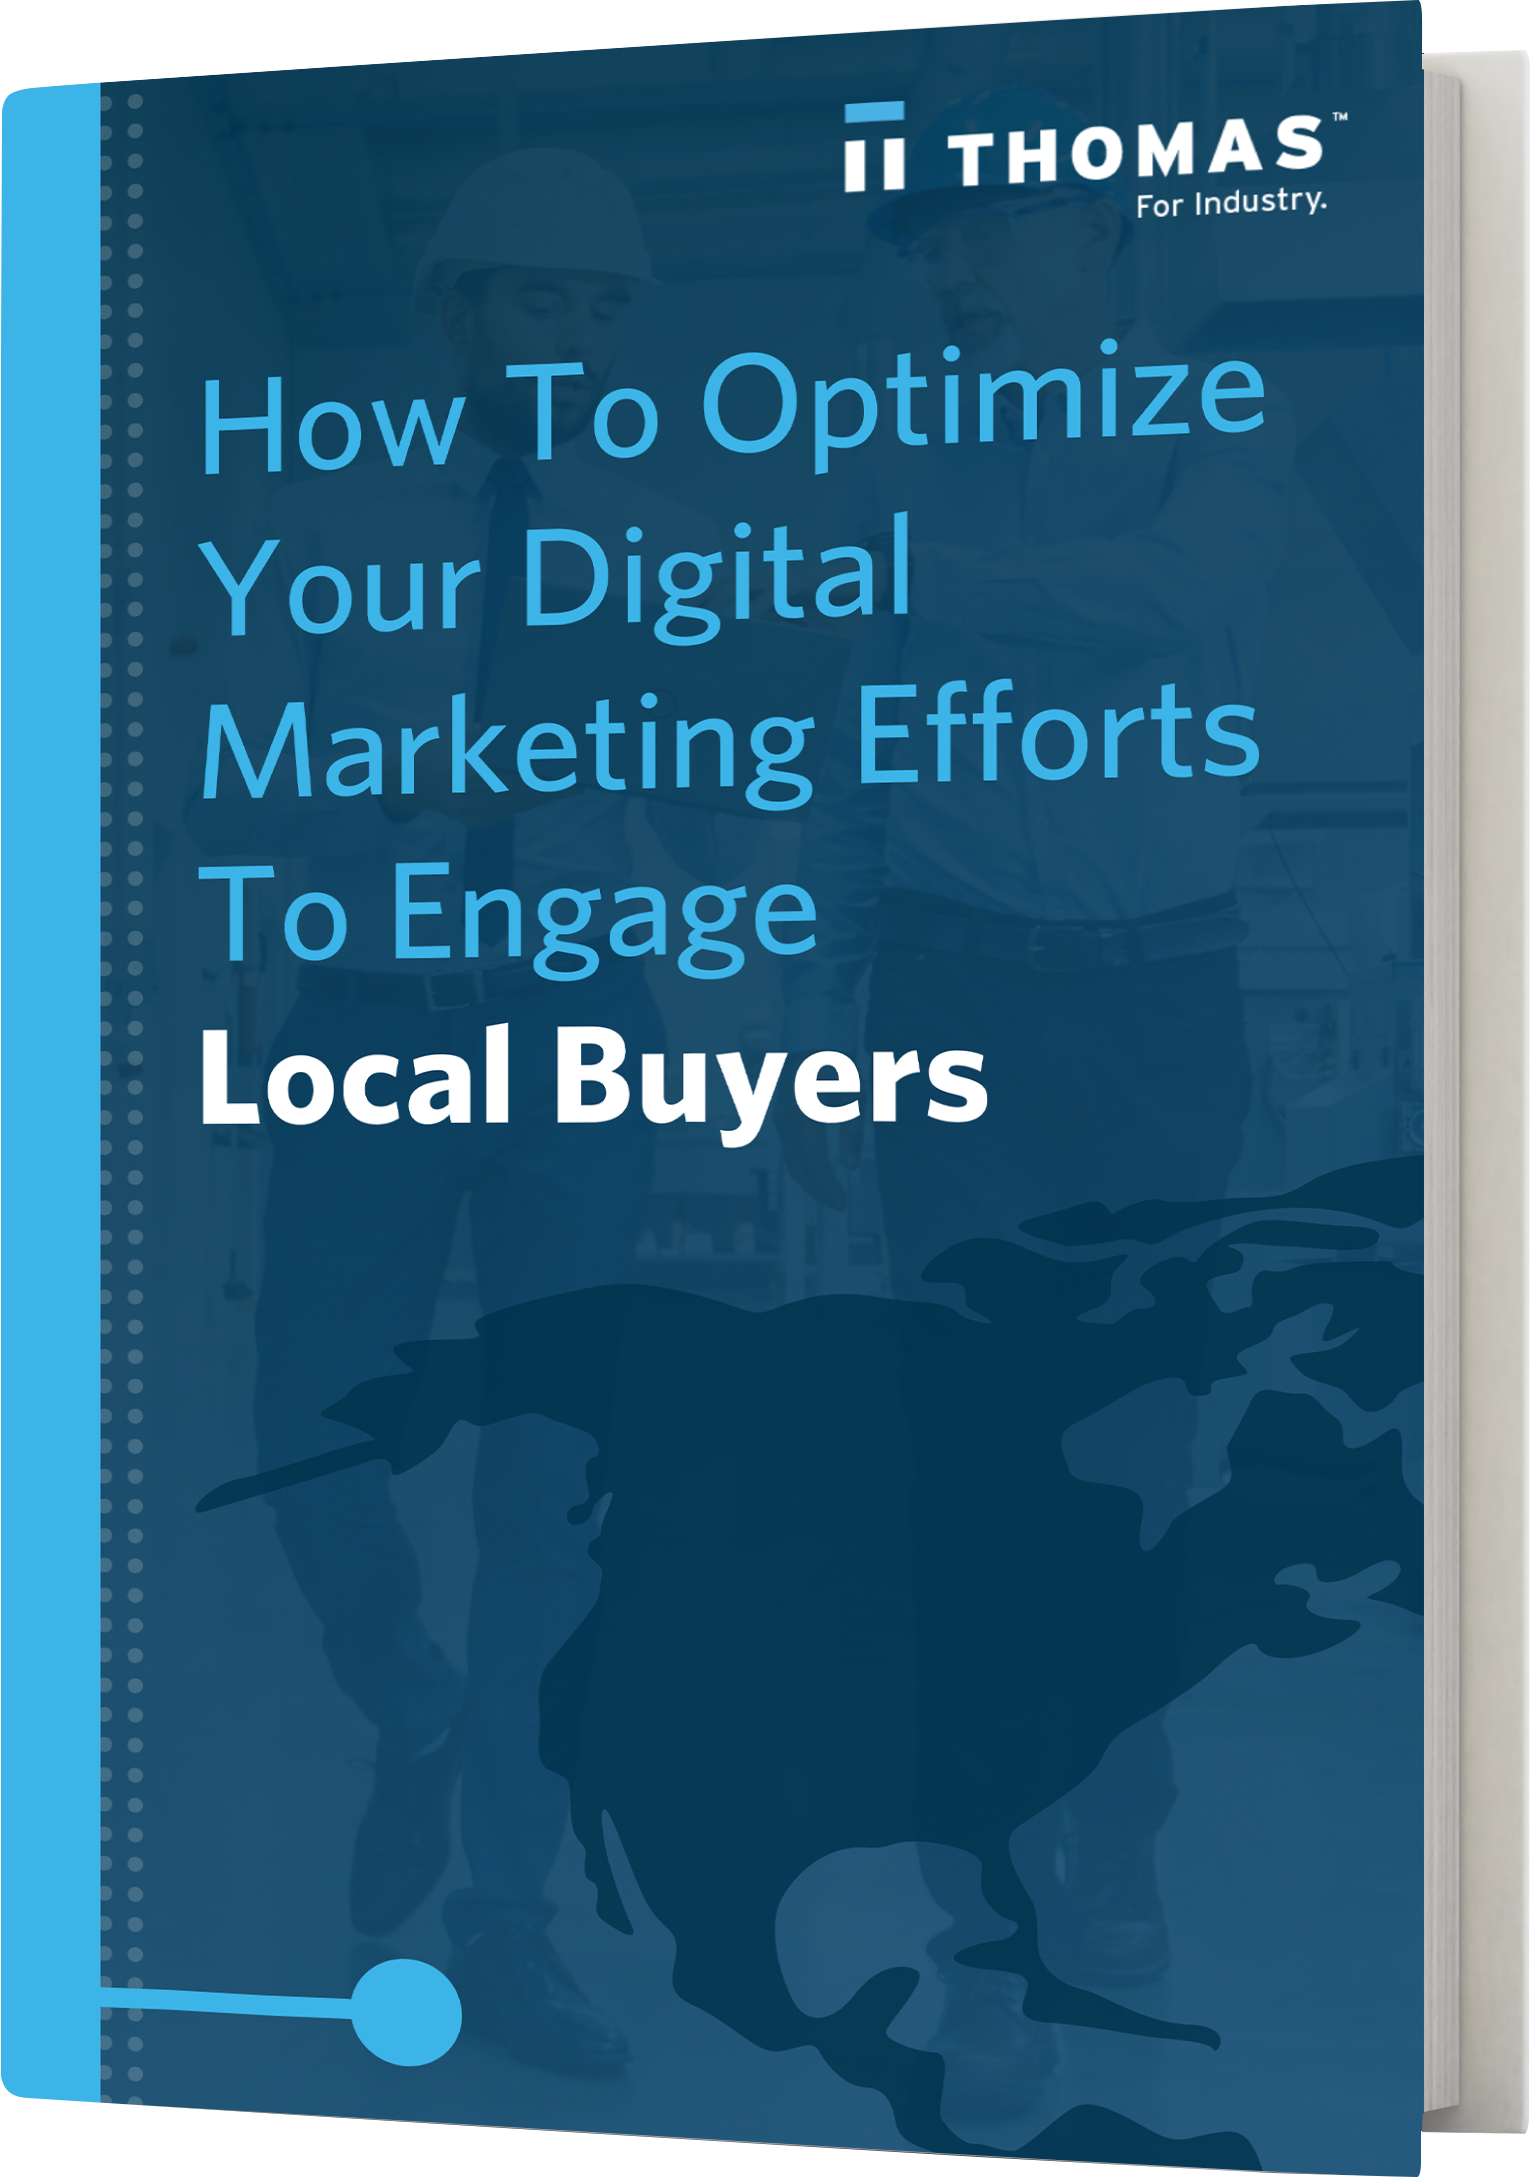 How To Optimize Your Digital Marketing Efforts To Engage Local Buyers